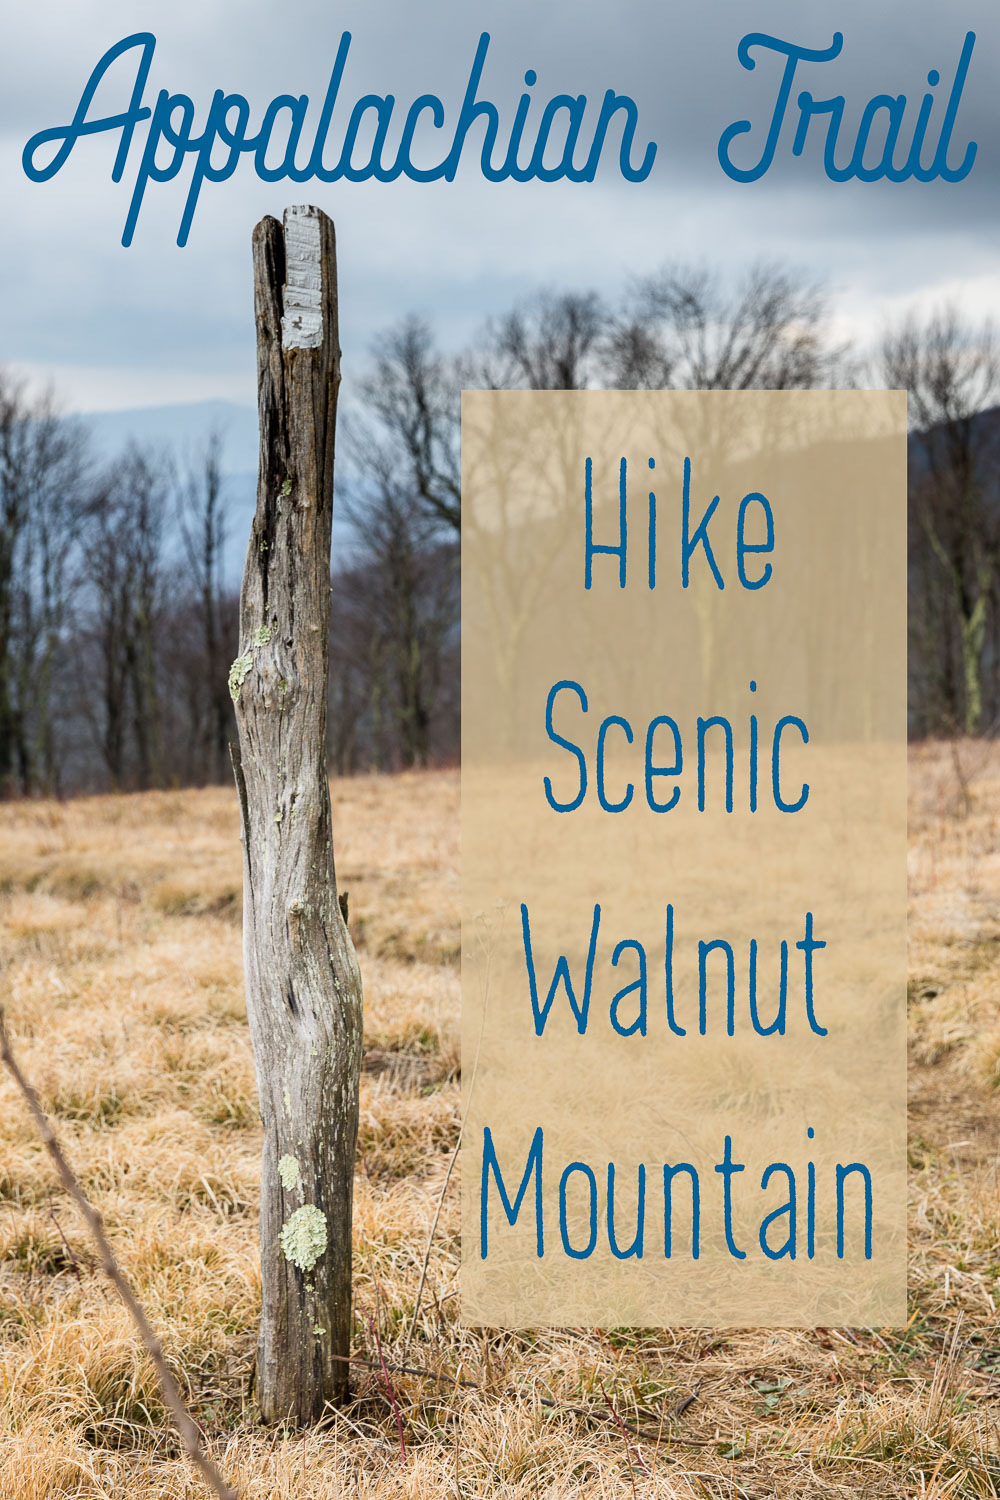 Appalachian Trail - Hike Scenic Walnut Mountain in NC